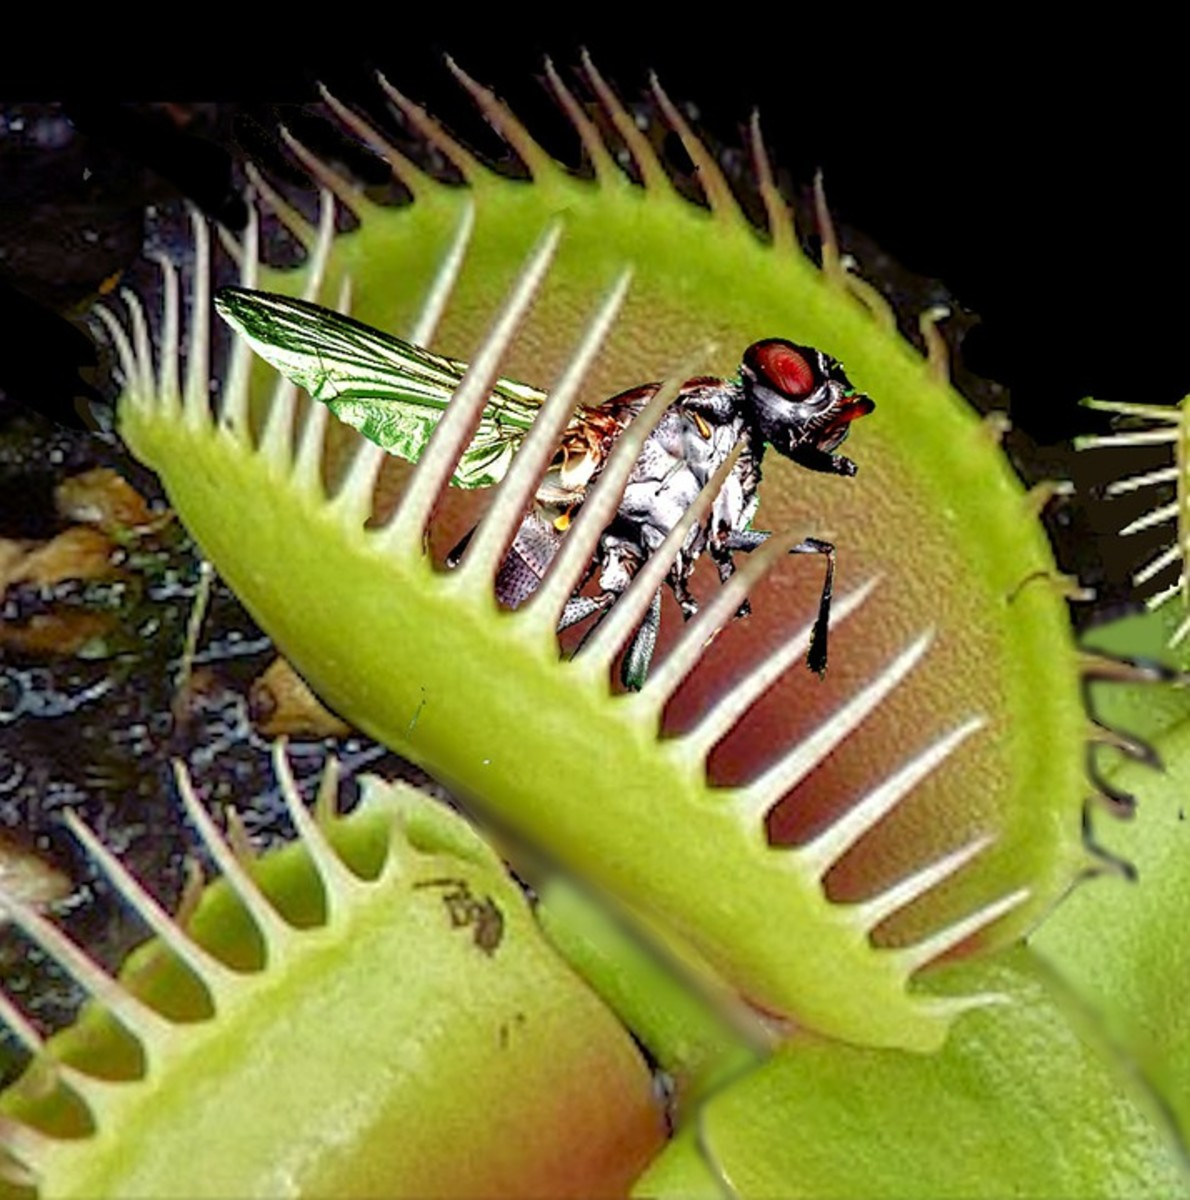 Venus flytraps eat small insects like flies.